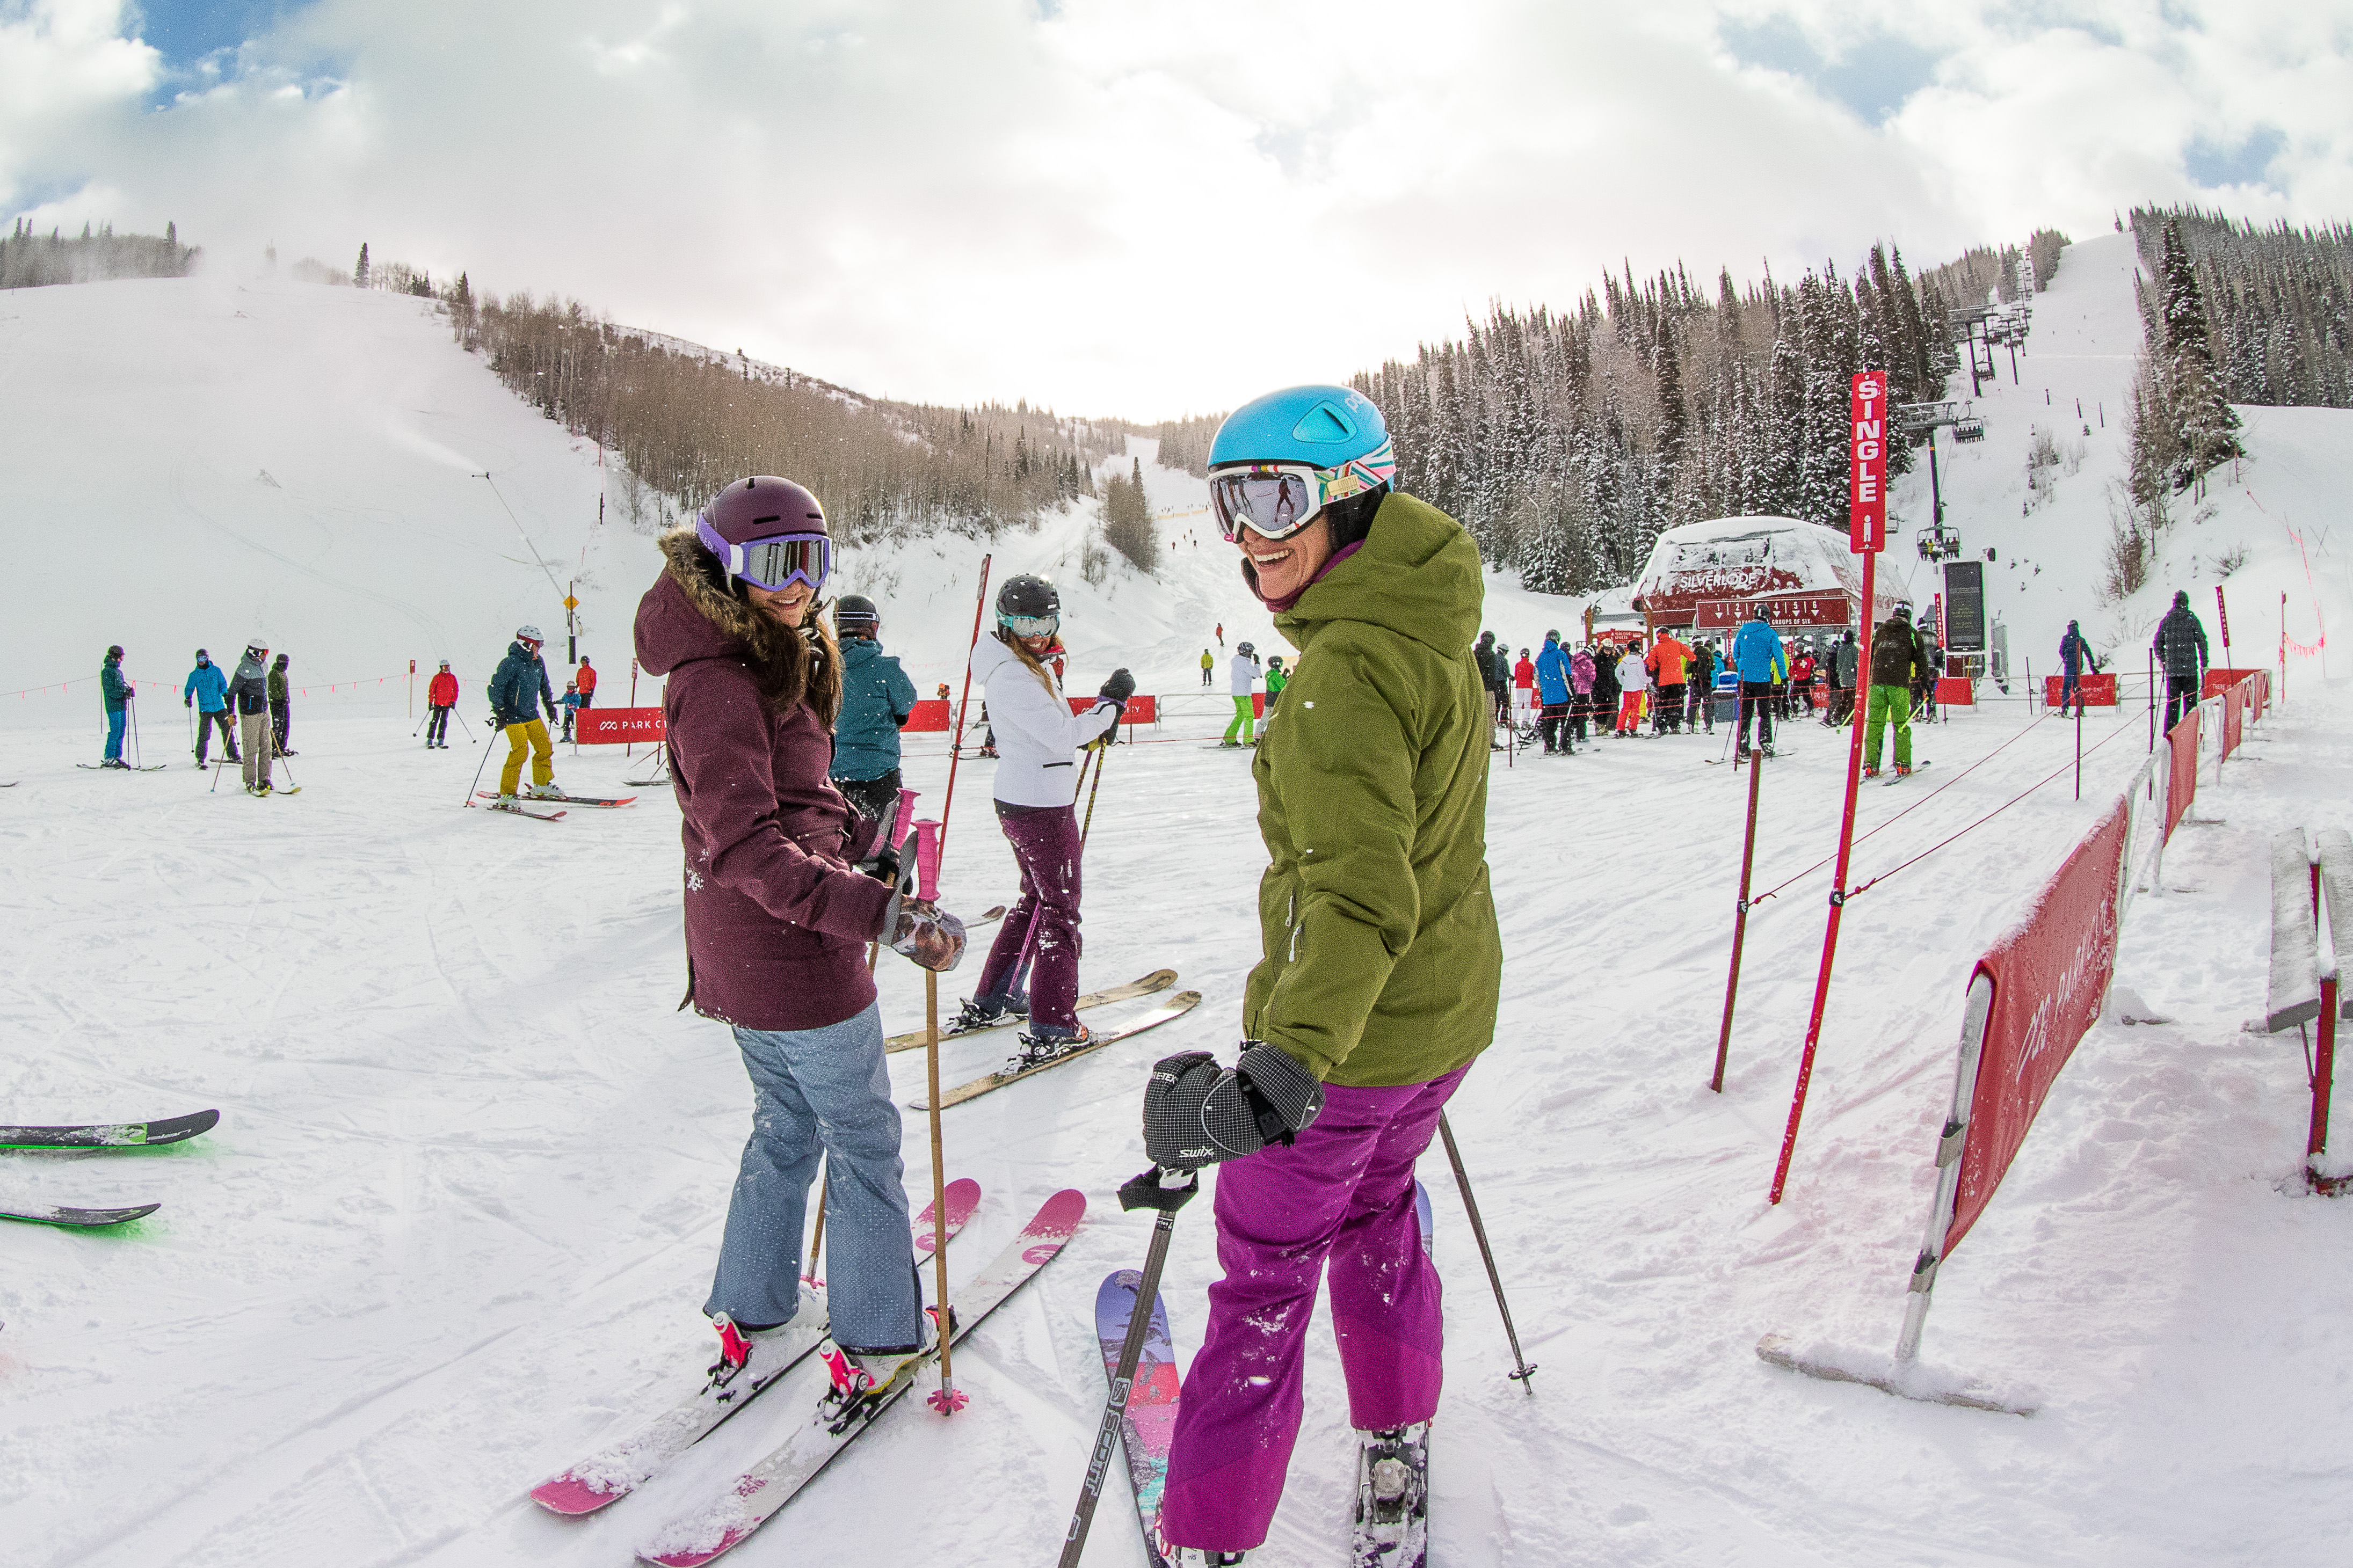 AmericaS Best Employers 2020 Forbes Names Vail Resorts One of